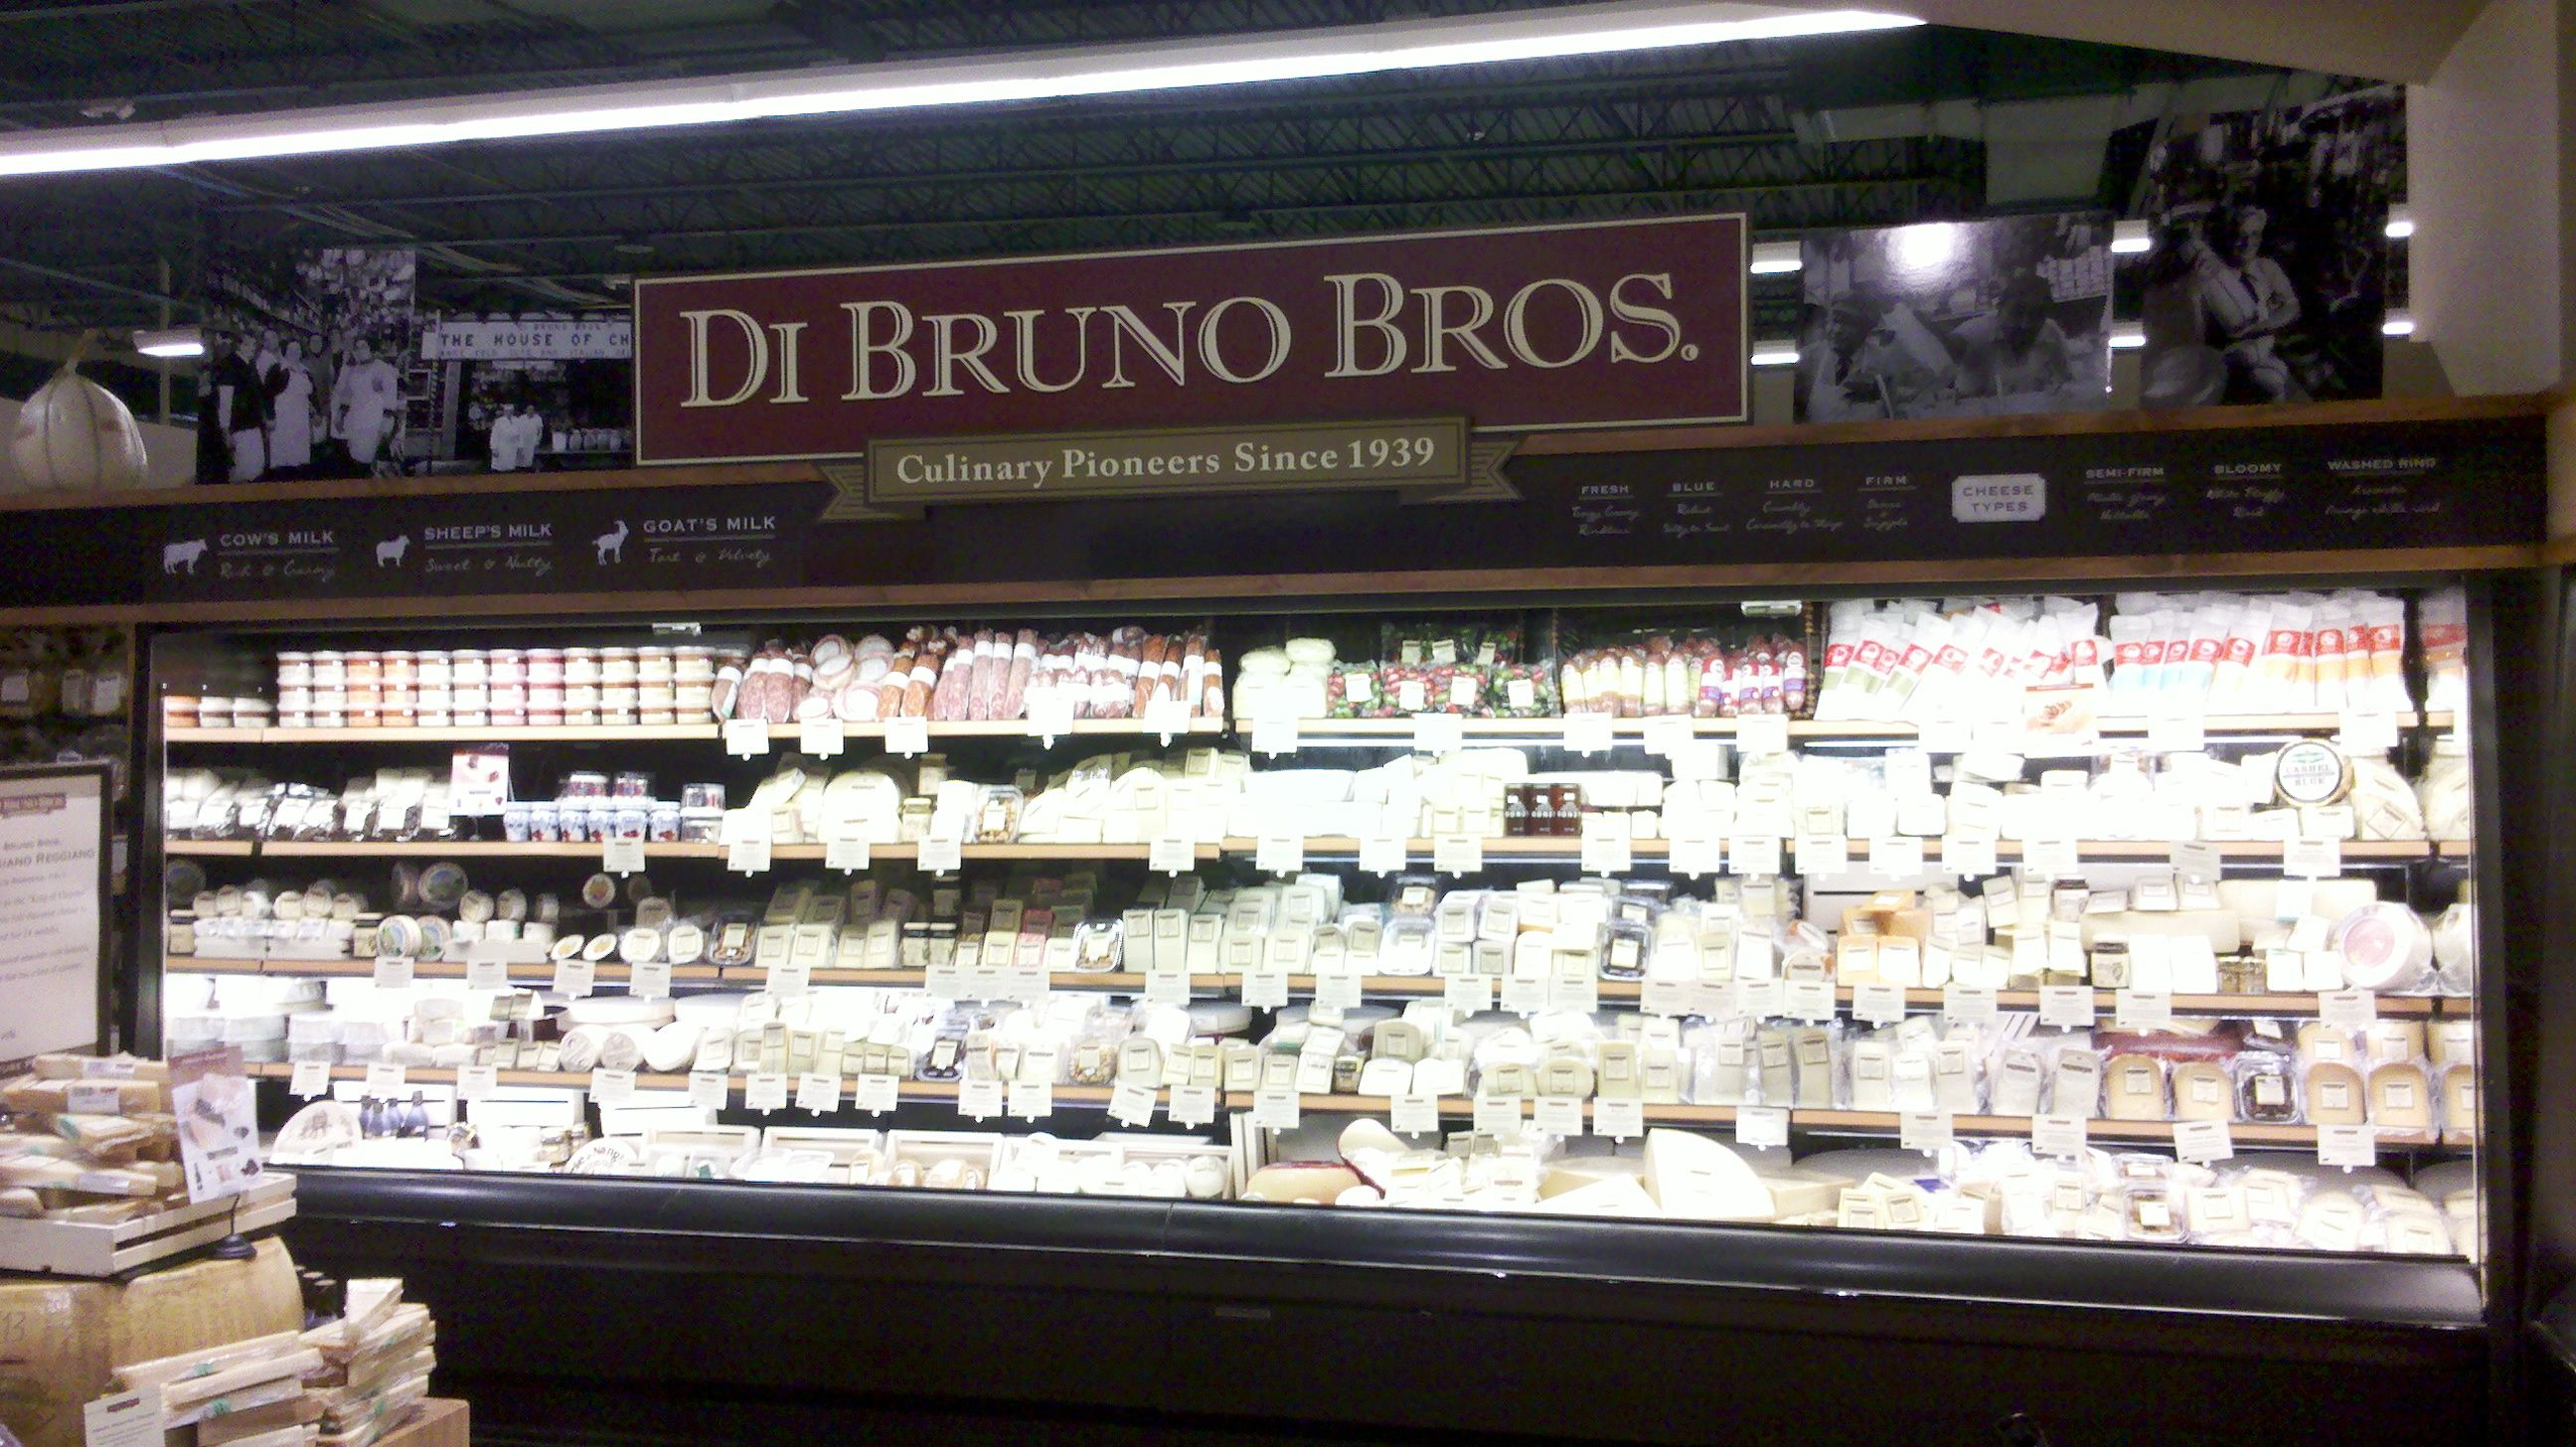 Di Bruno Bros Gourmet Cheeses Meats And More Now Available At The